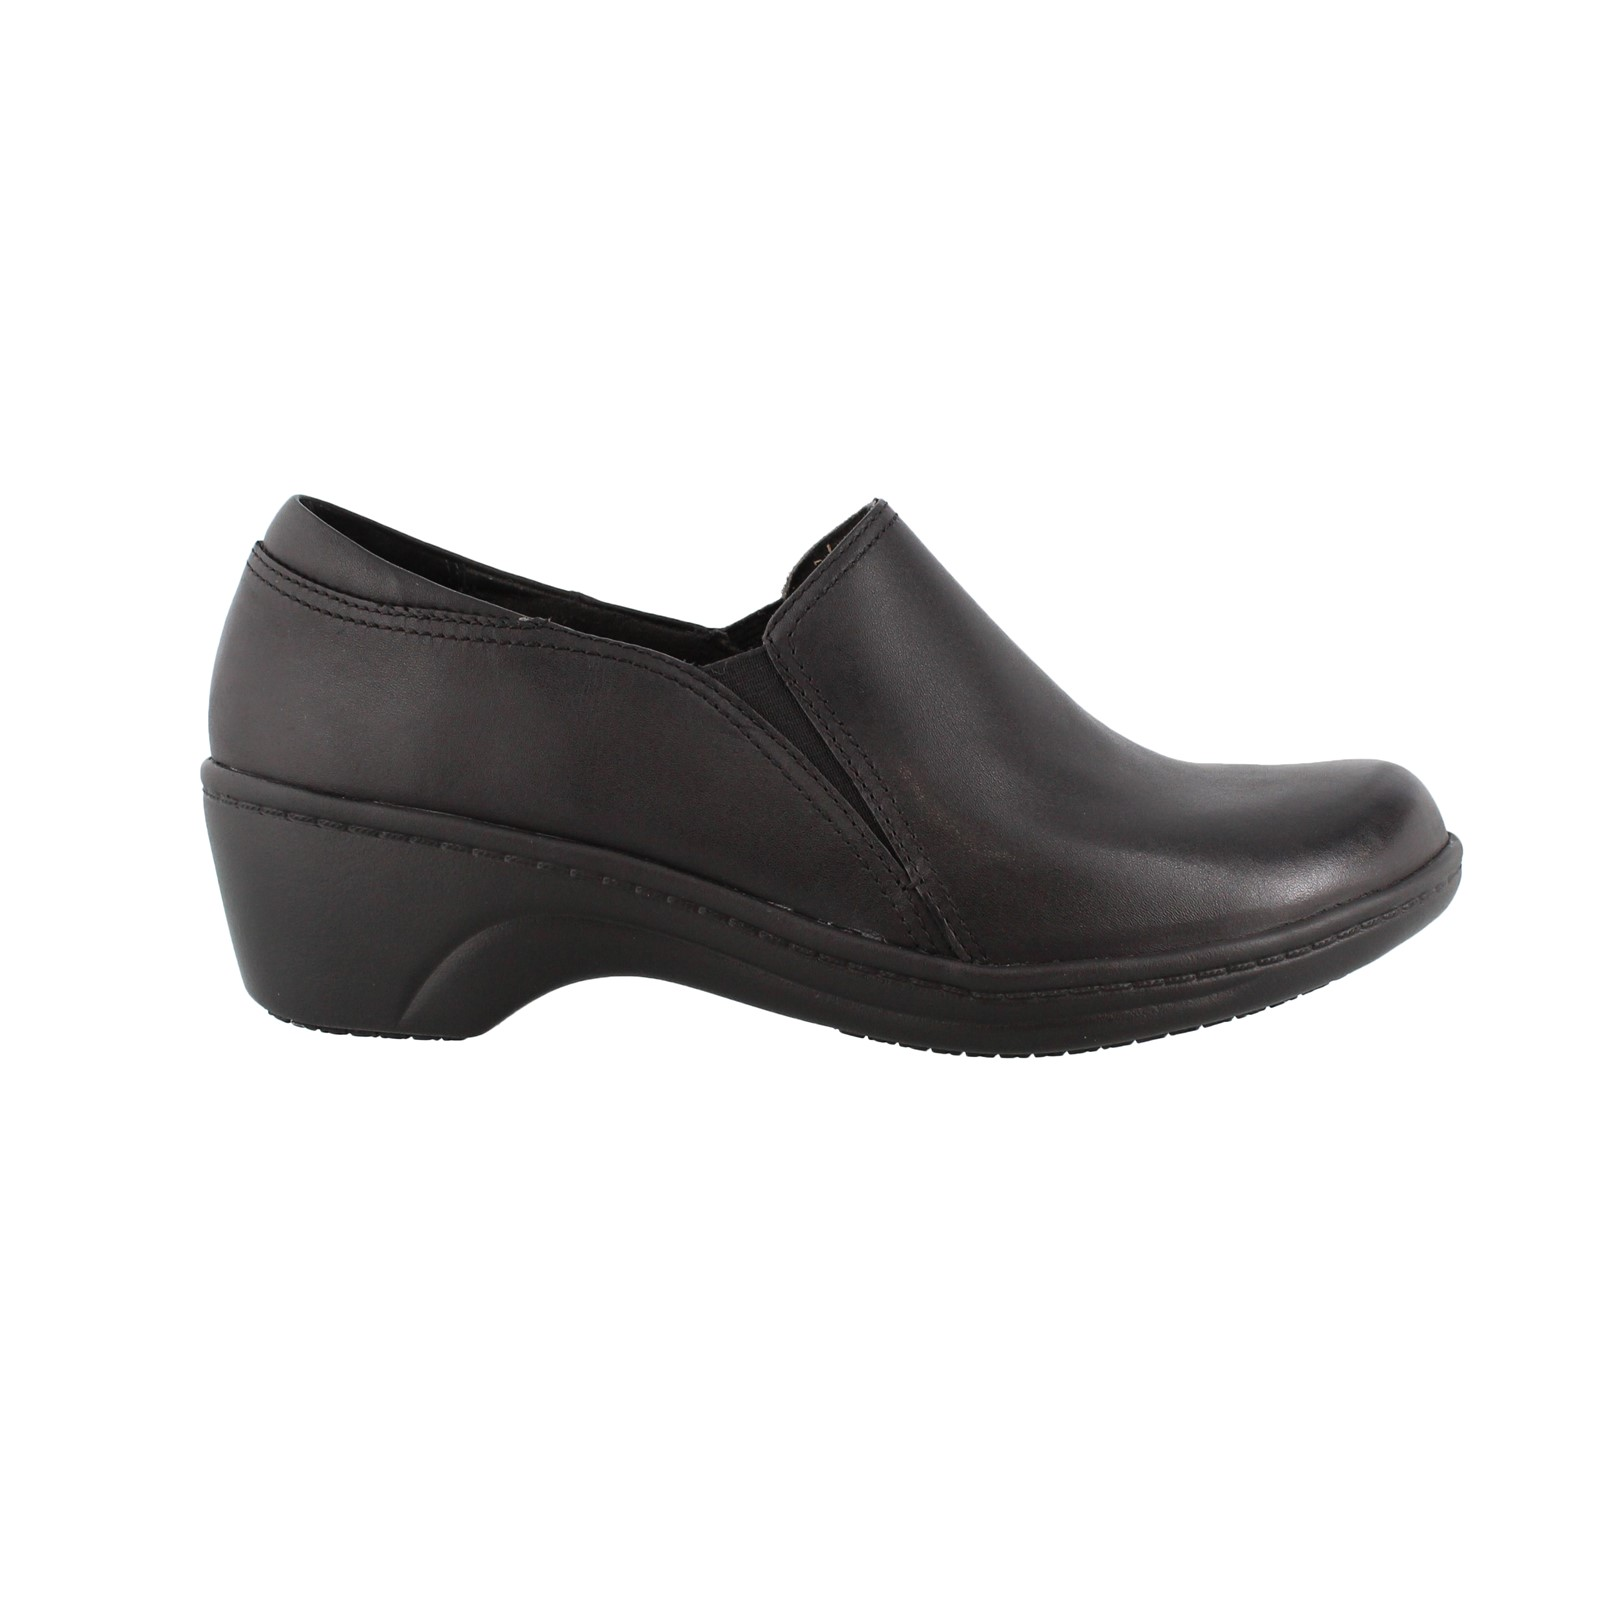 Women's Clarks, Grasp Chime Mid Heel Shoes